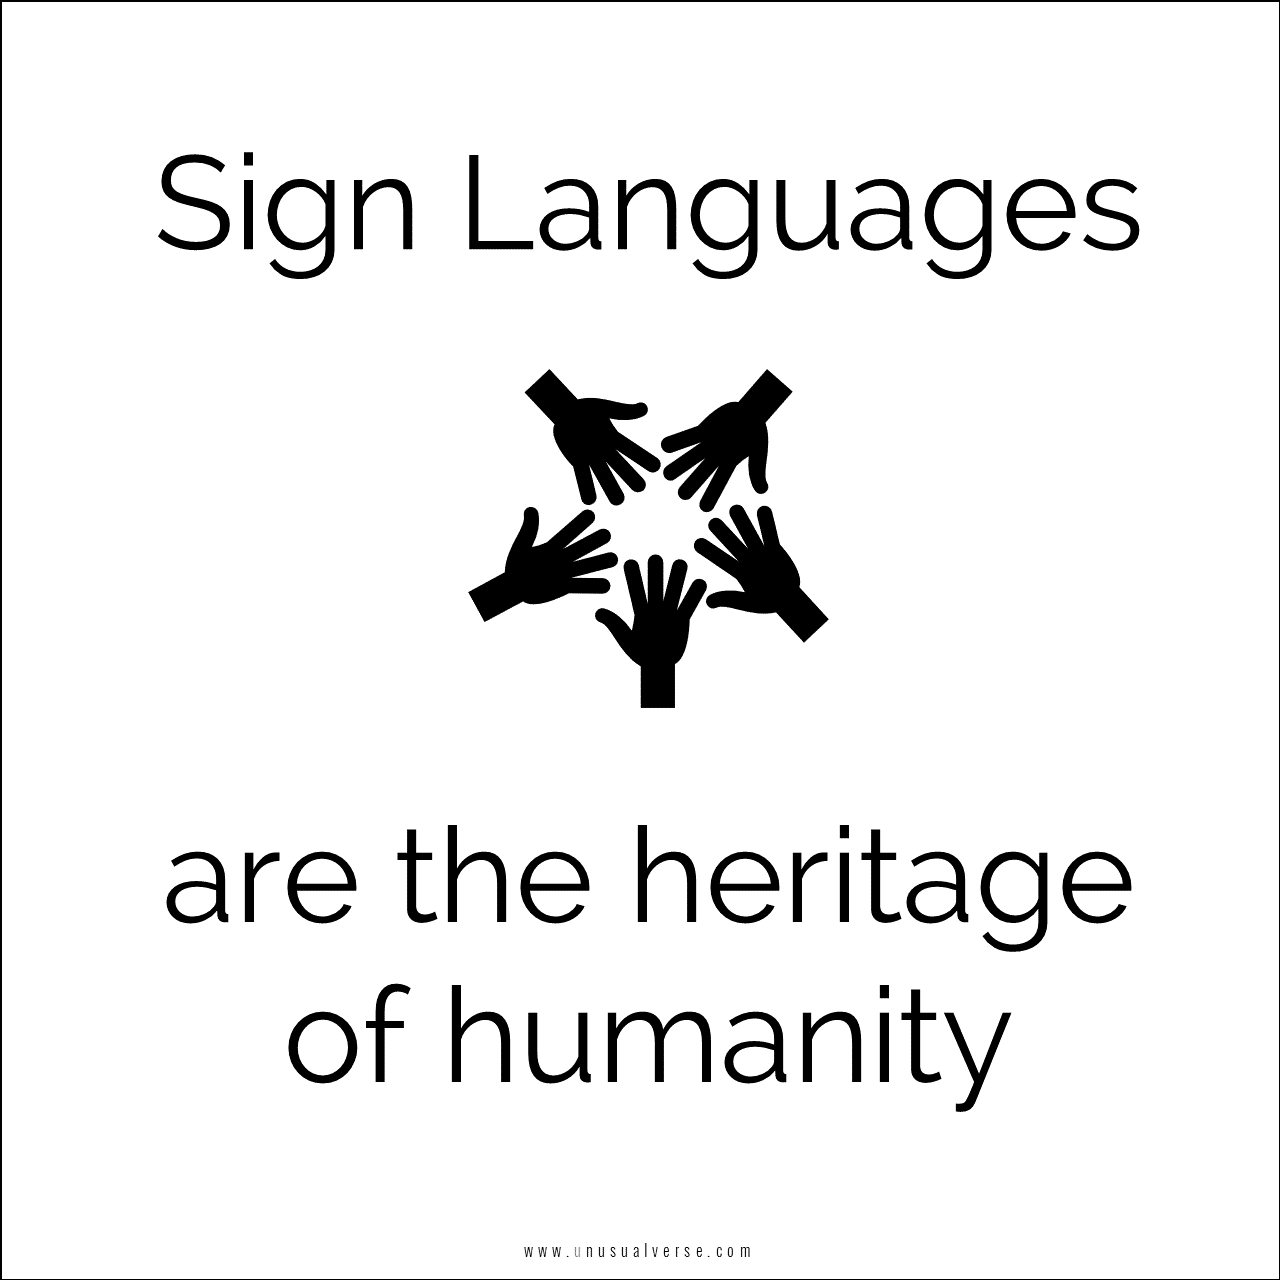 Sign Languages are the heritage of humanity